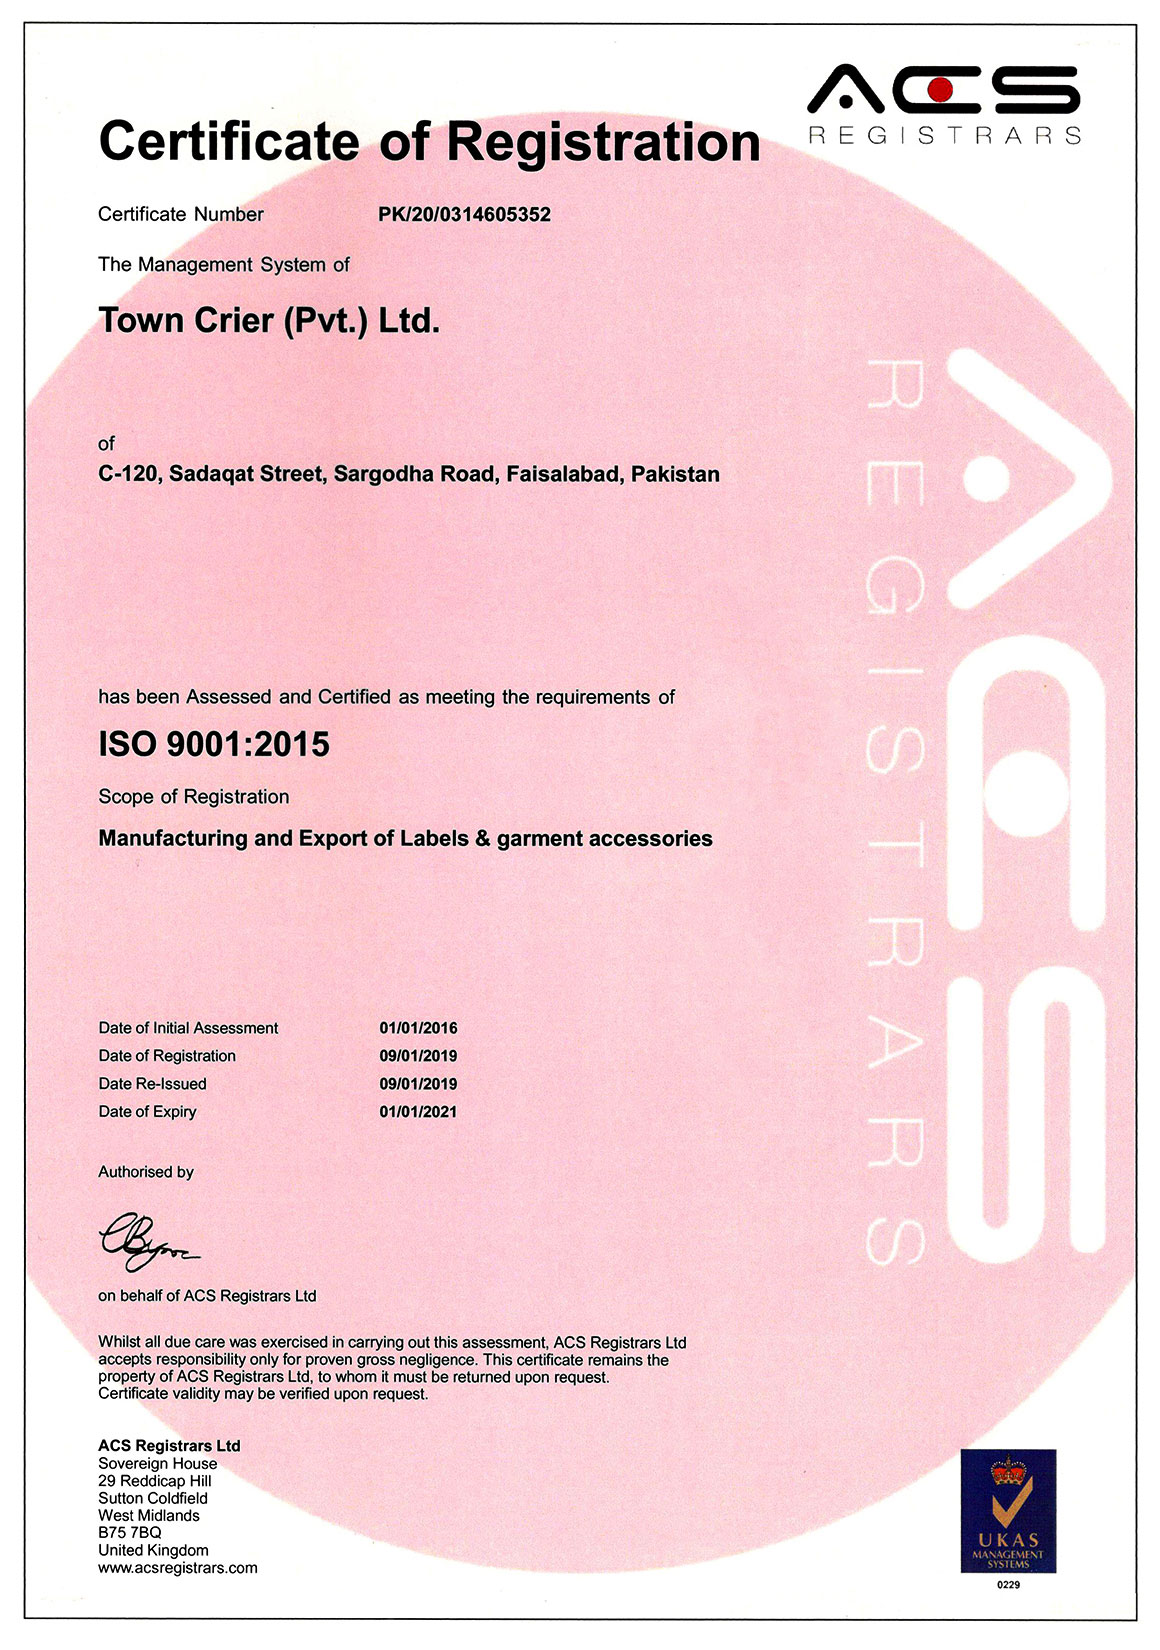 Town Crier Printing & Packaging certificates ACS